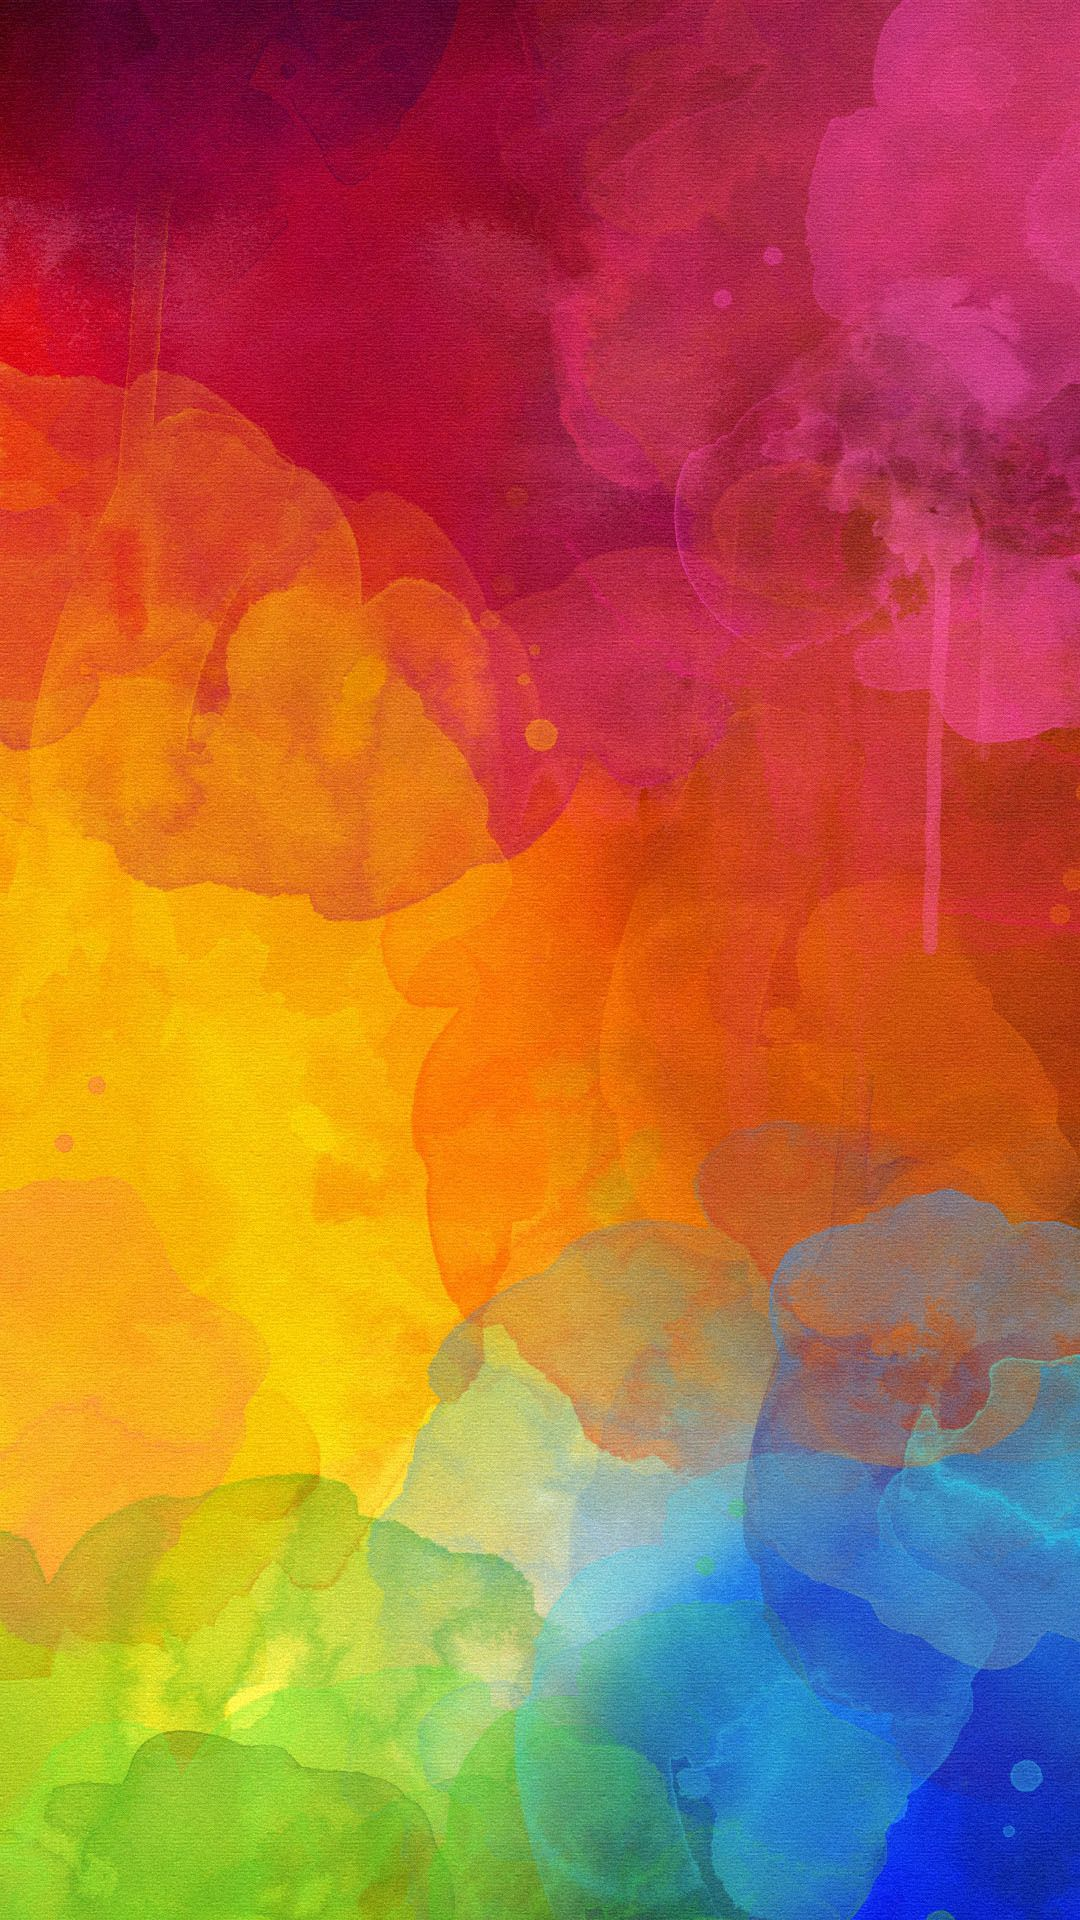 Colourful Watercolour Mark. Color Of Rainbow In Abstract. Wallpaper